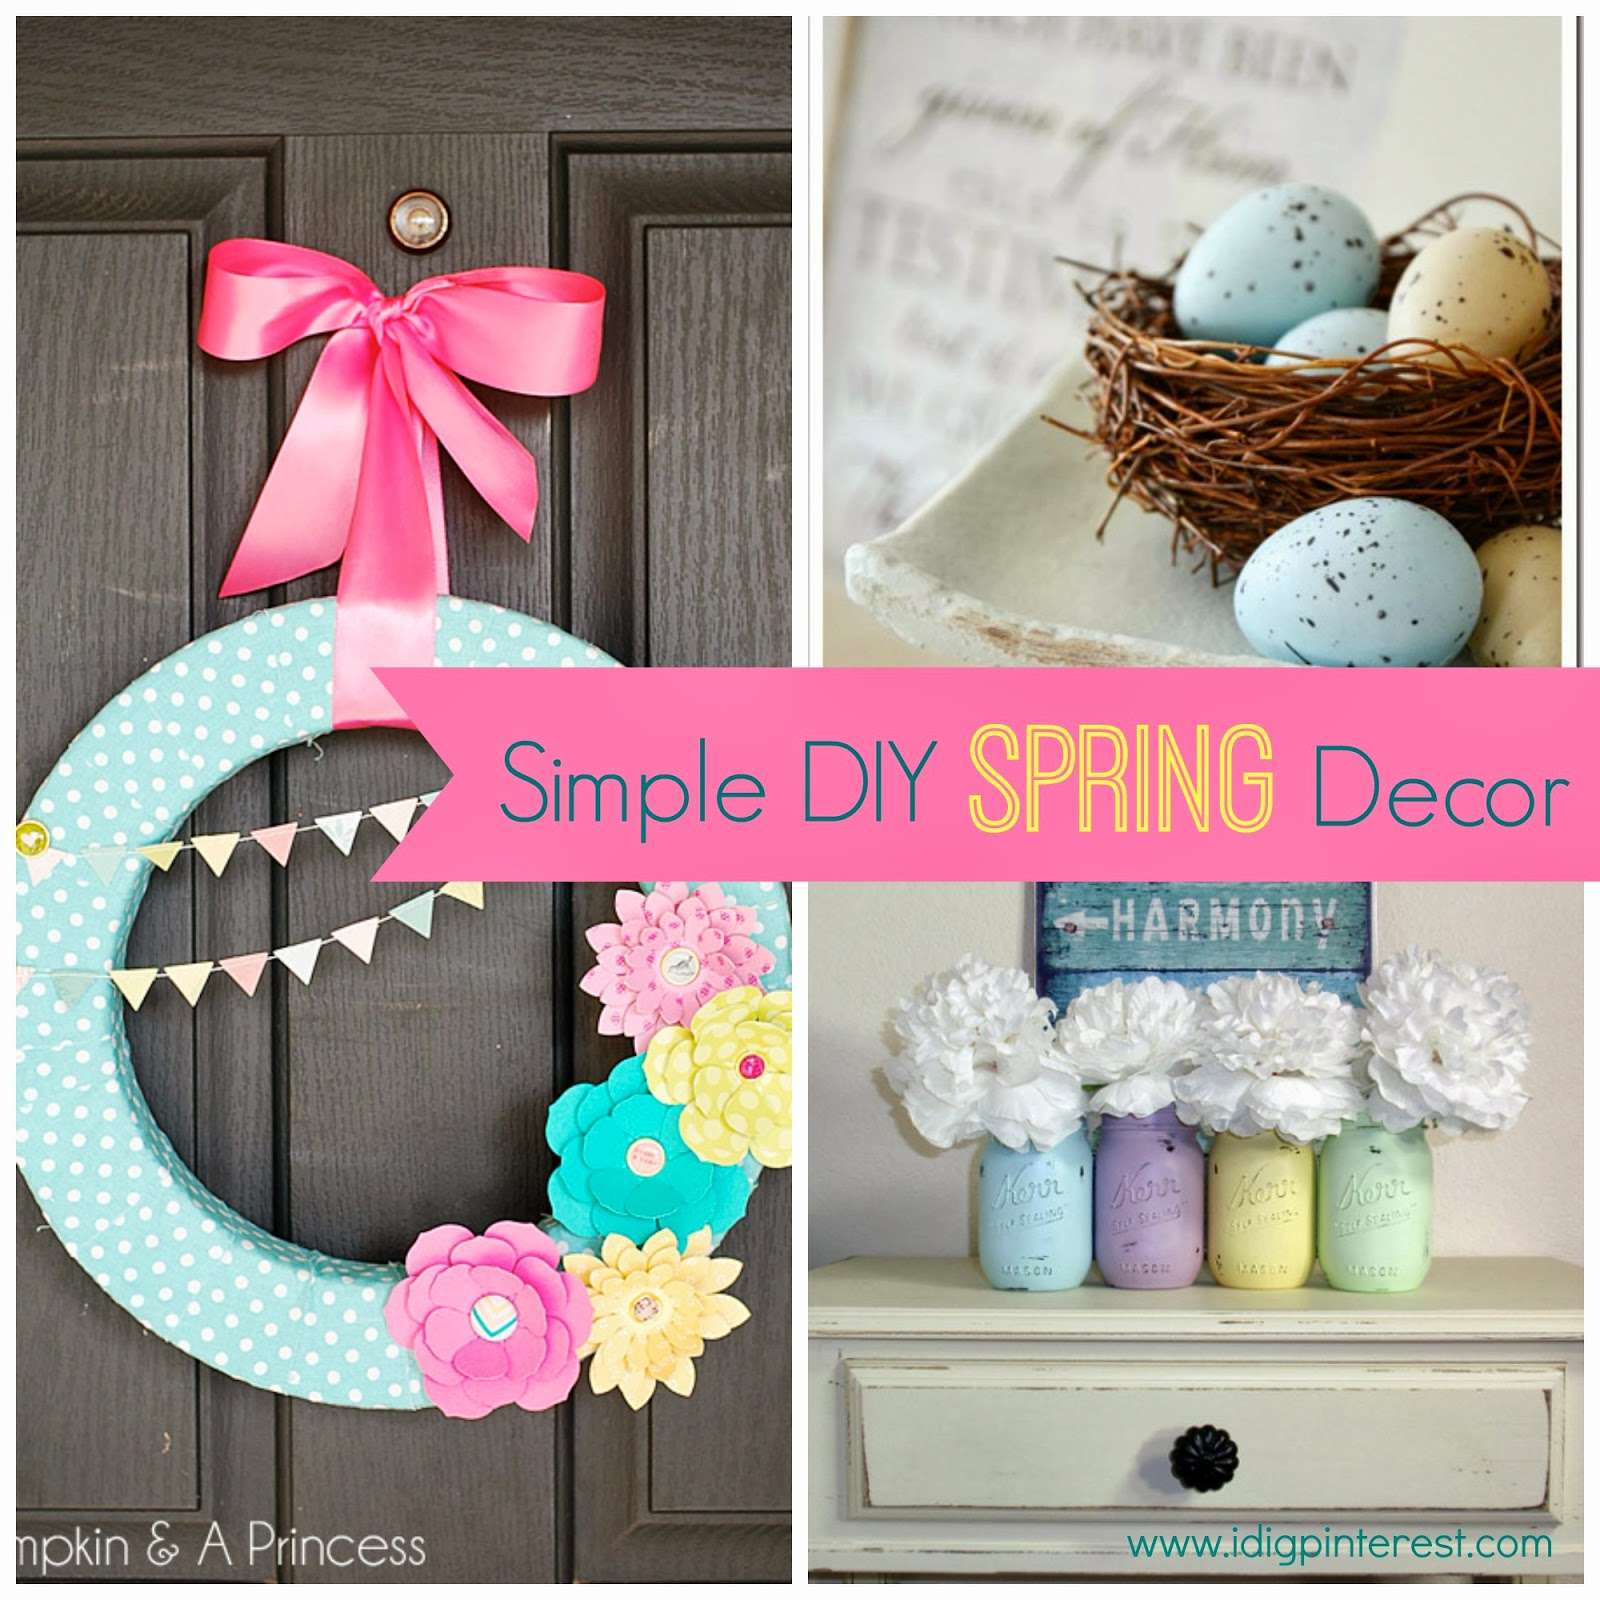 spring decorating ideas pinterest simple diy spring decor